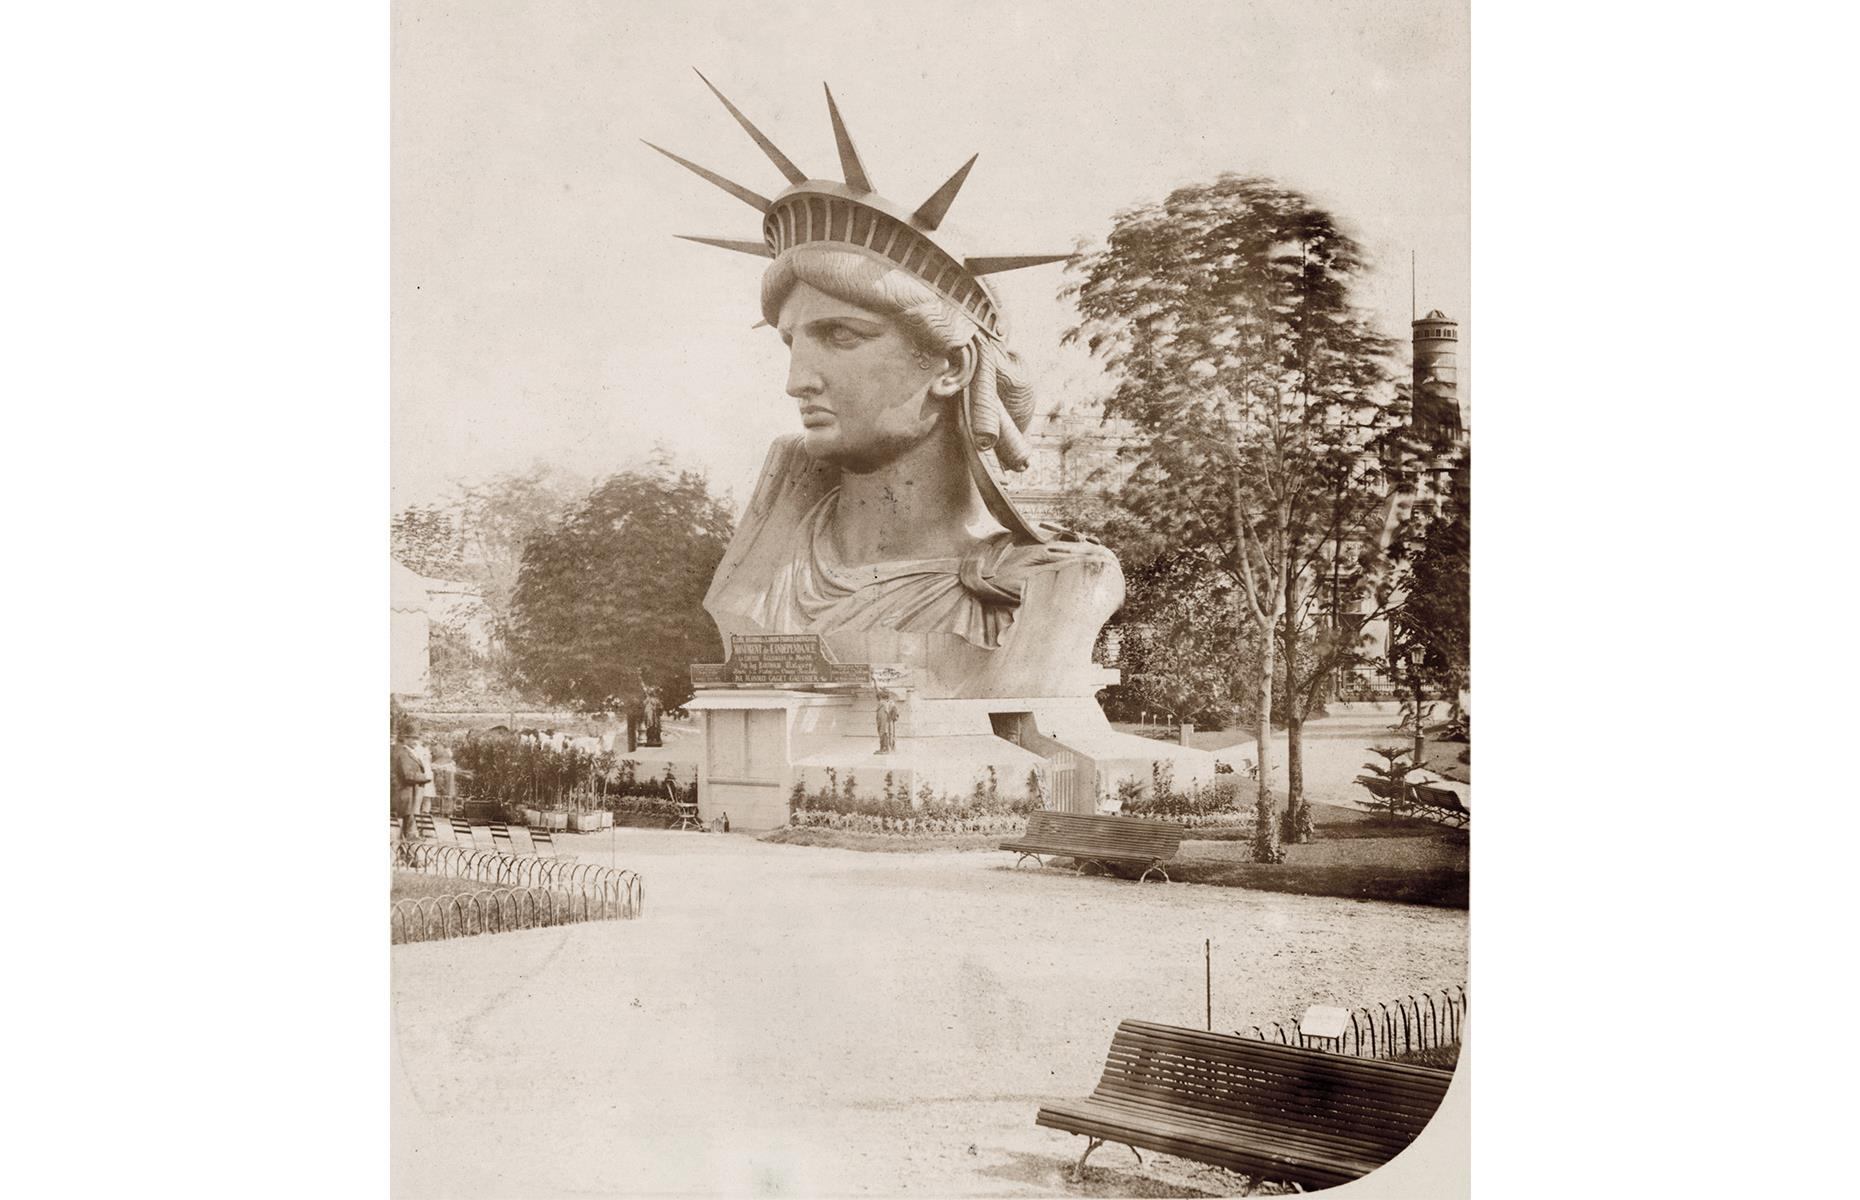 Slide 6 of 51: This famous statue didn't start its life in New York – in fact, it was displayed at the Paris World's Fair in 1878 (pictured), before being given to the US by France in 1886, to commemorate the alliance between the two countries during the American Revolution. A few decades later, the majestic statue, which stands on Liberty Island, had become one of the city's–and world's – best-loved landmarks.